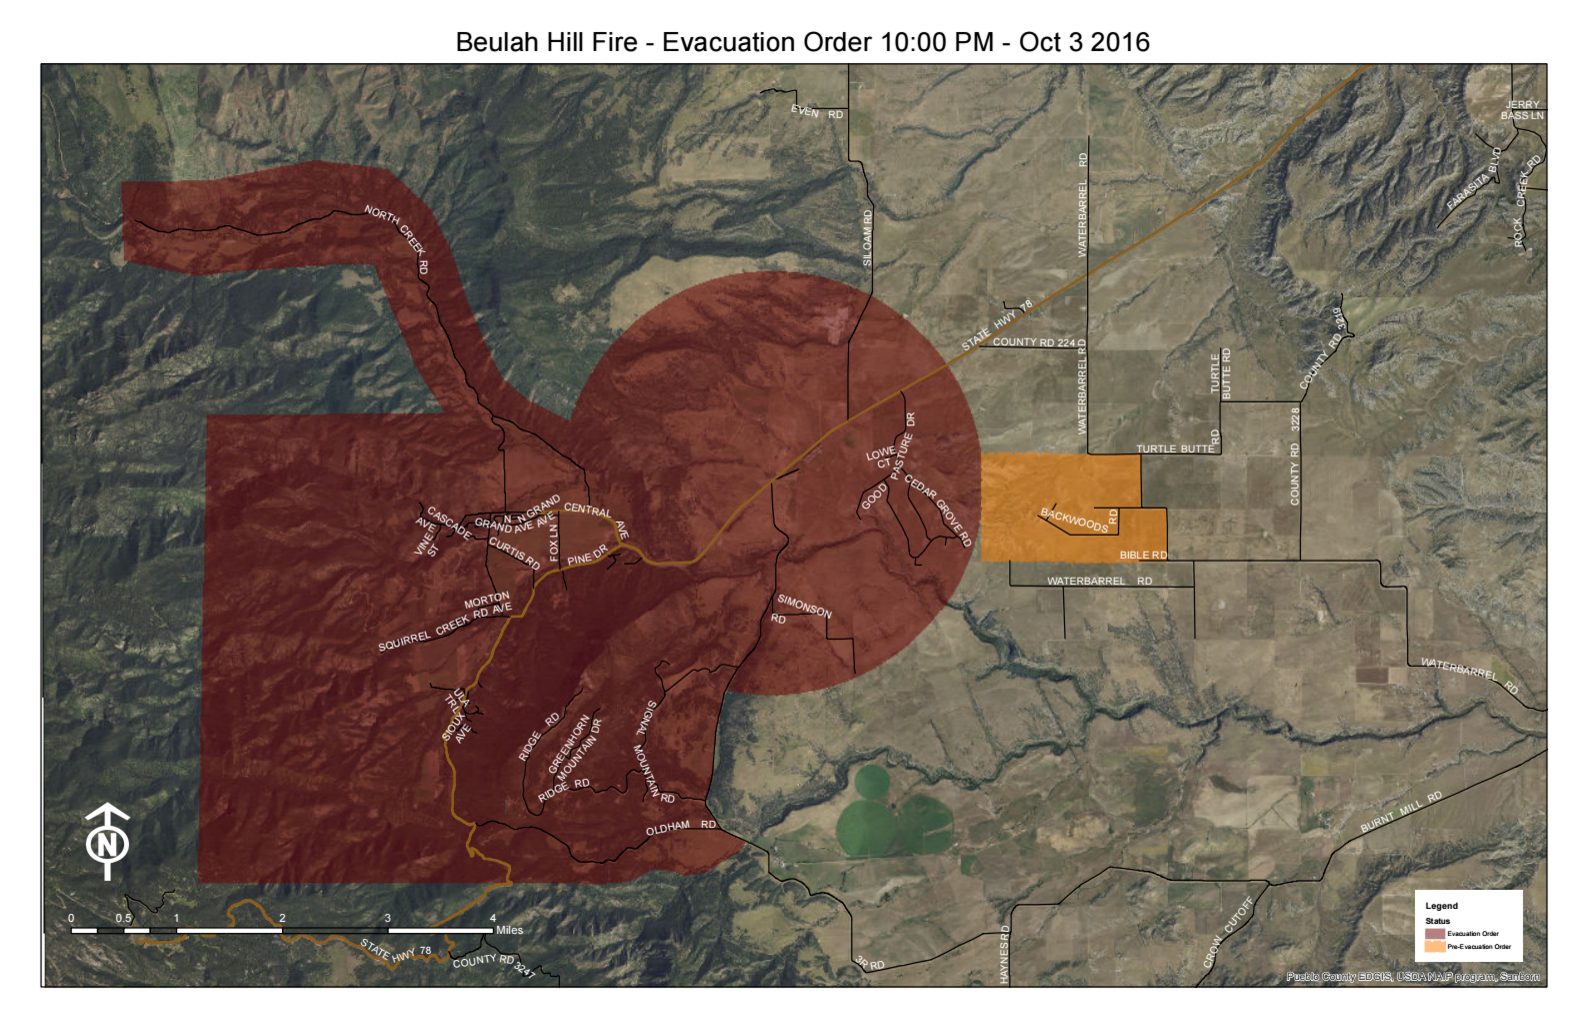 This map, dated 10/3/16 10:00 PM, shows evacuation notices current at that time. Red designates mantadory evacuation; orange, pre-evacuation. Current as of 10:00 PM, 10/3/16